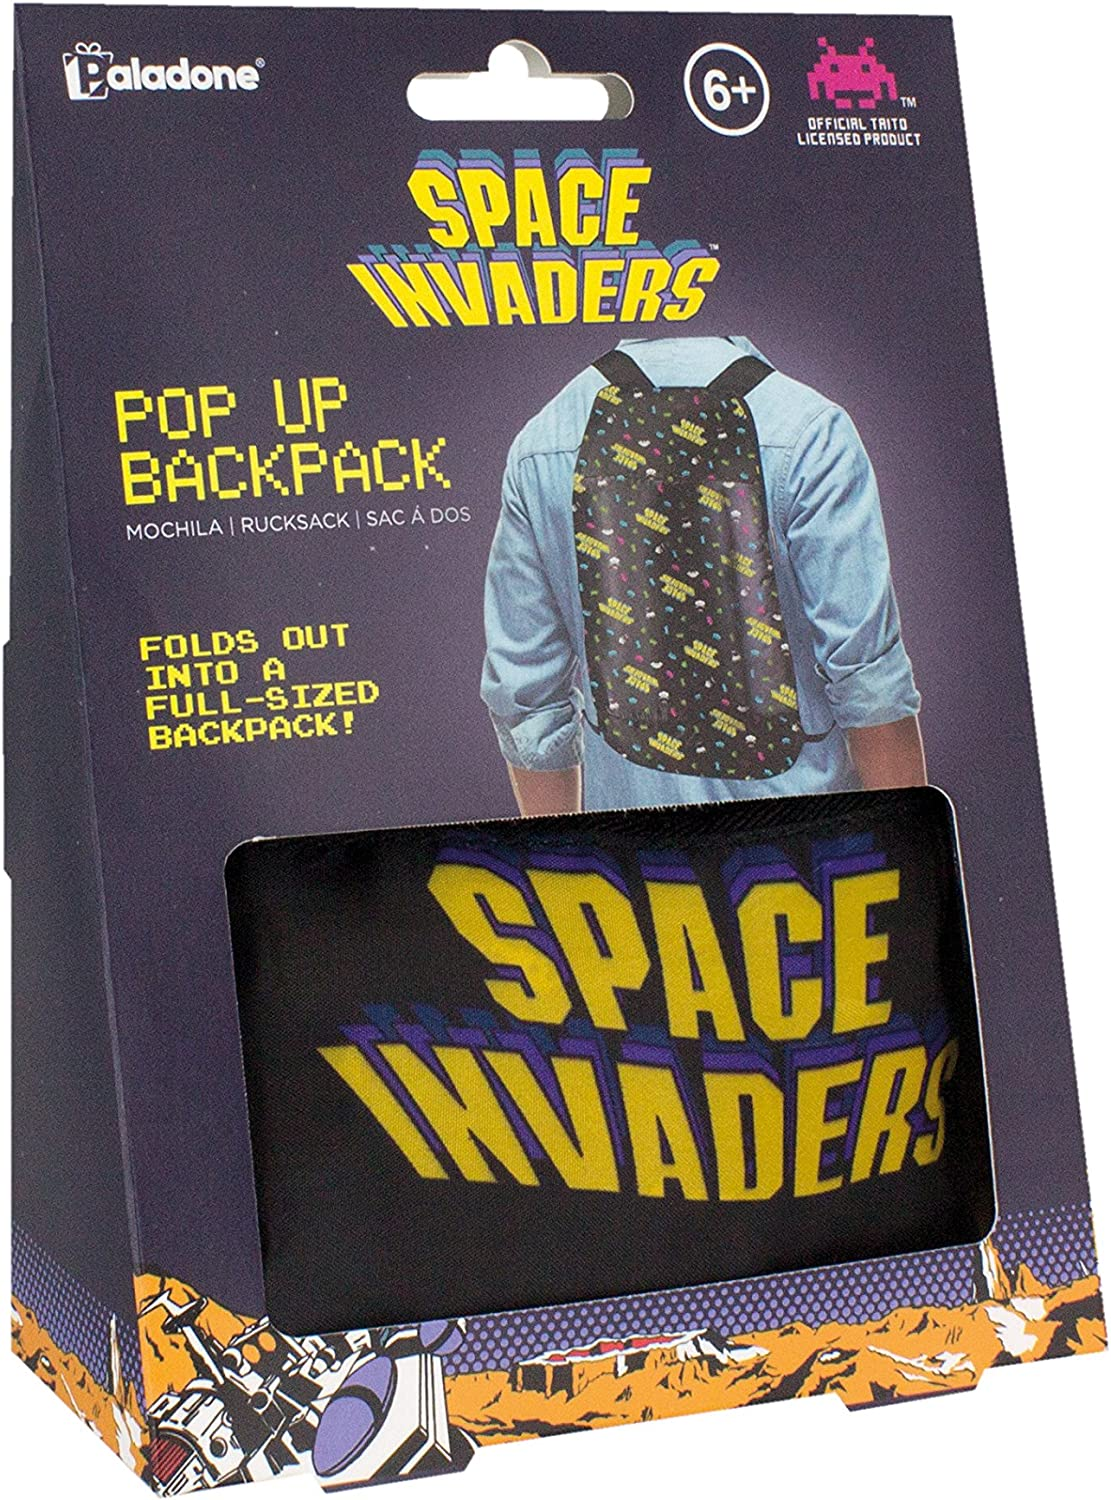 Pop Up Backpack Space Invaders